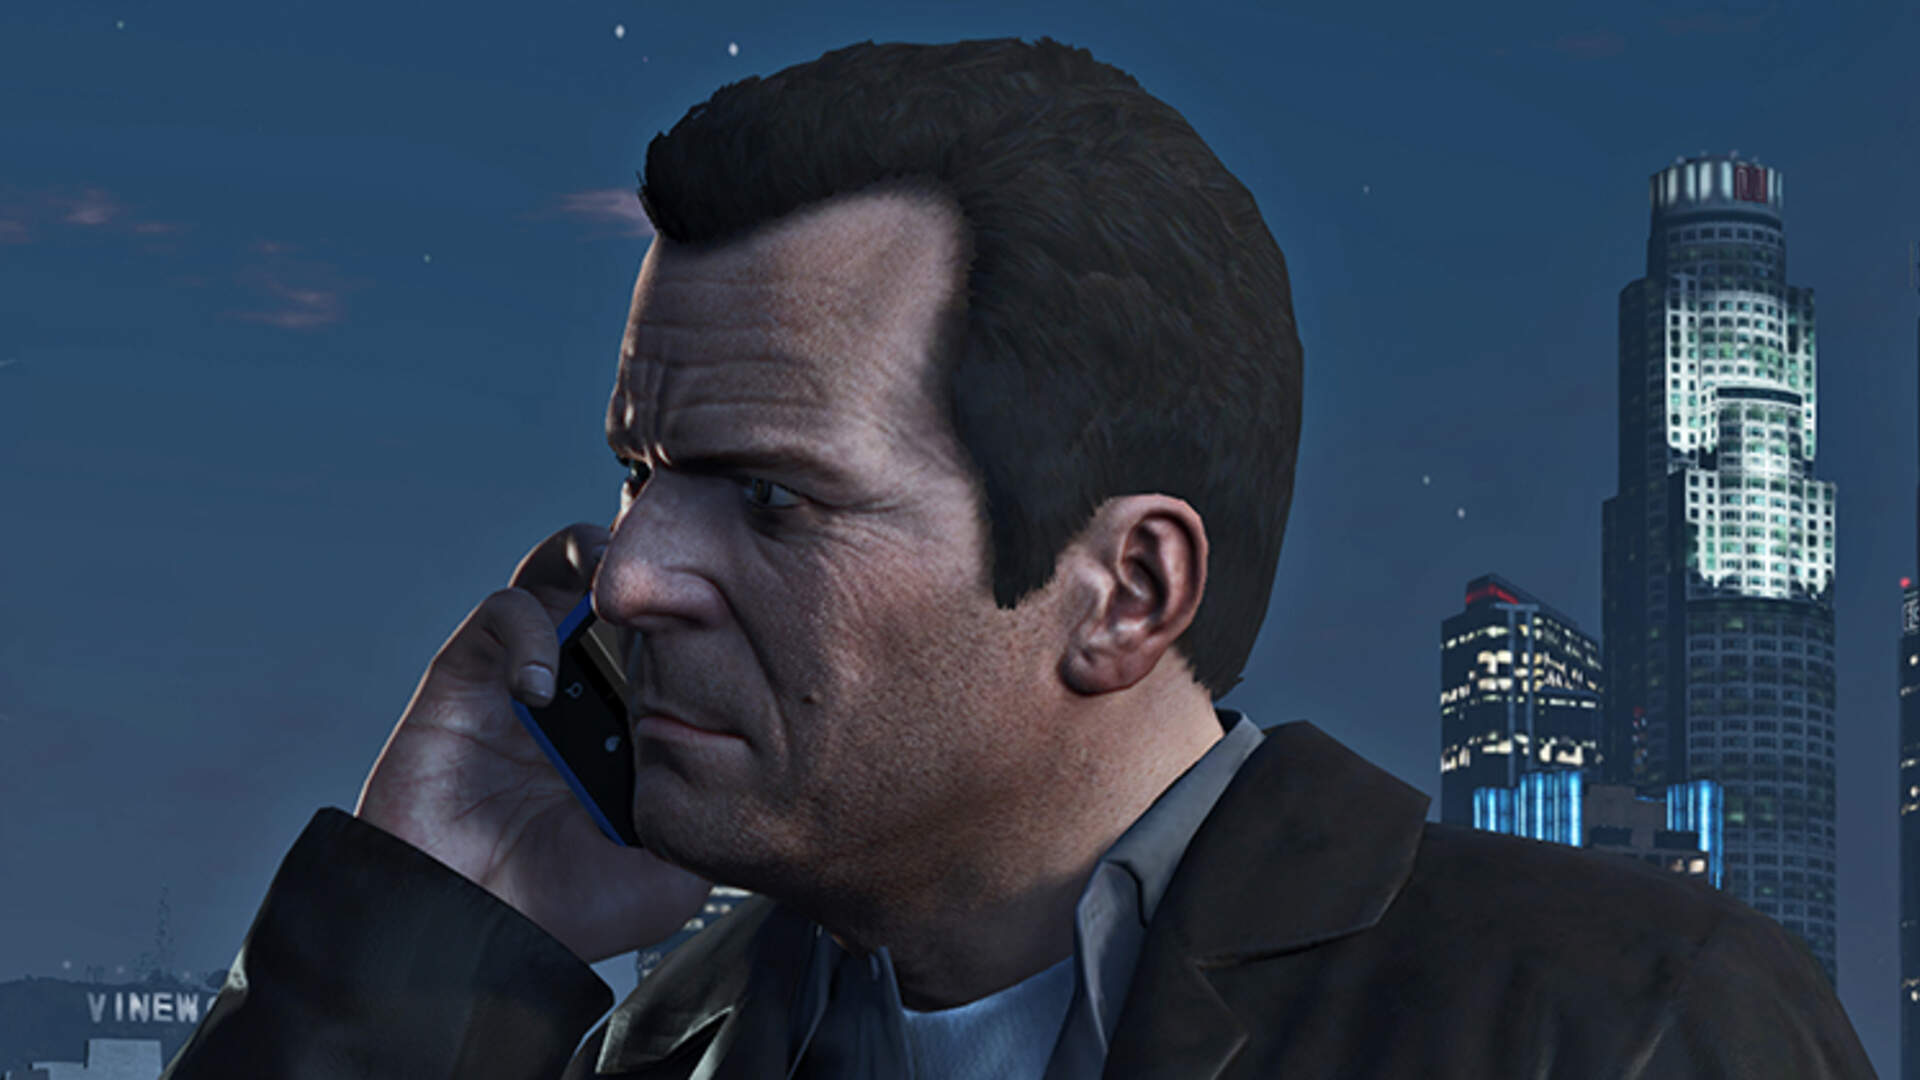 GTA 5 Guide: Complete Heists Guide, Make Lots of Money, Gunrunning - GTA 5 Tips and Tricks